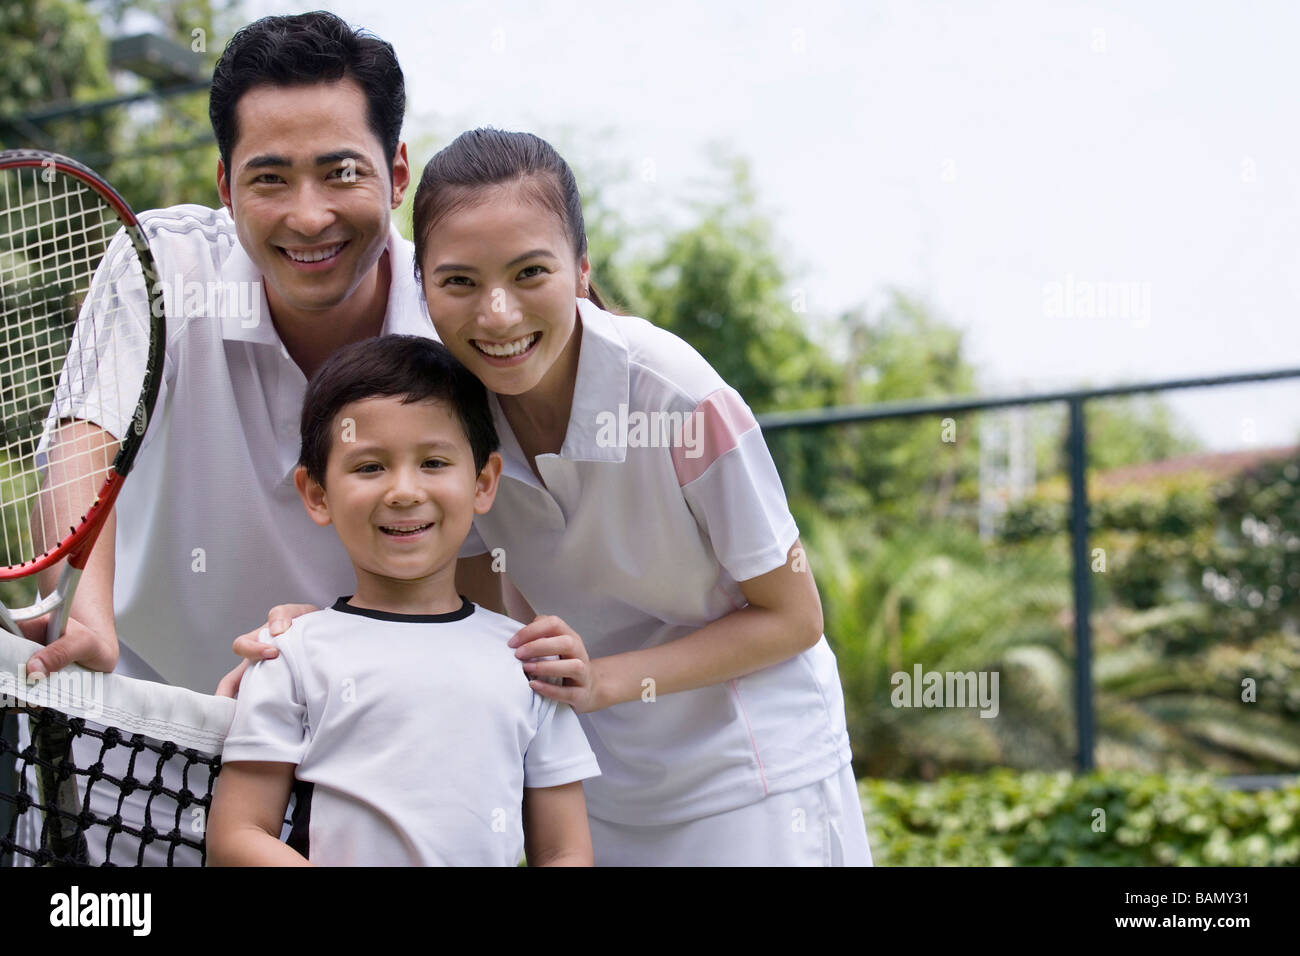 Portrait of a one child family on the tennis court - Stock Image